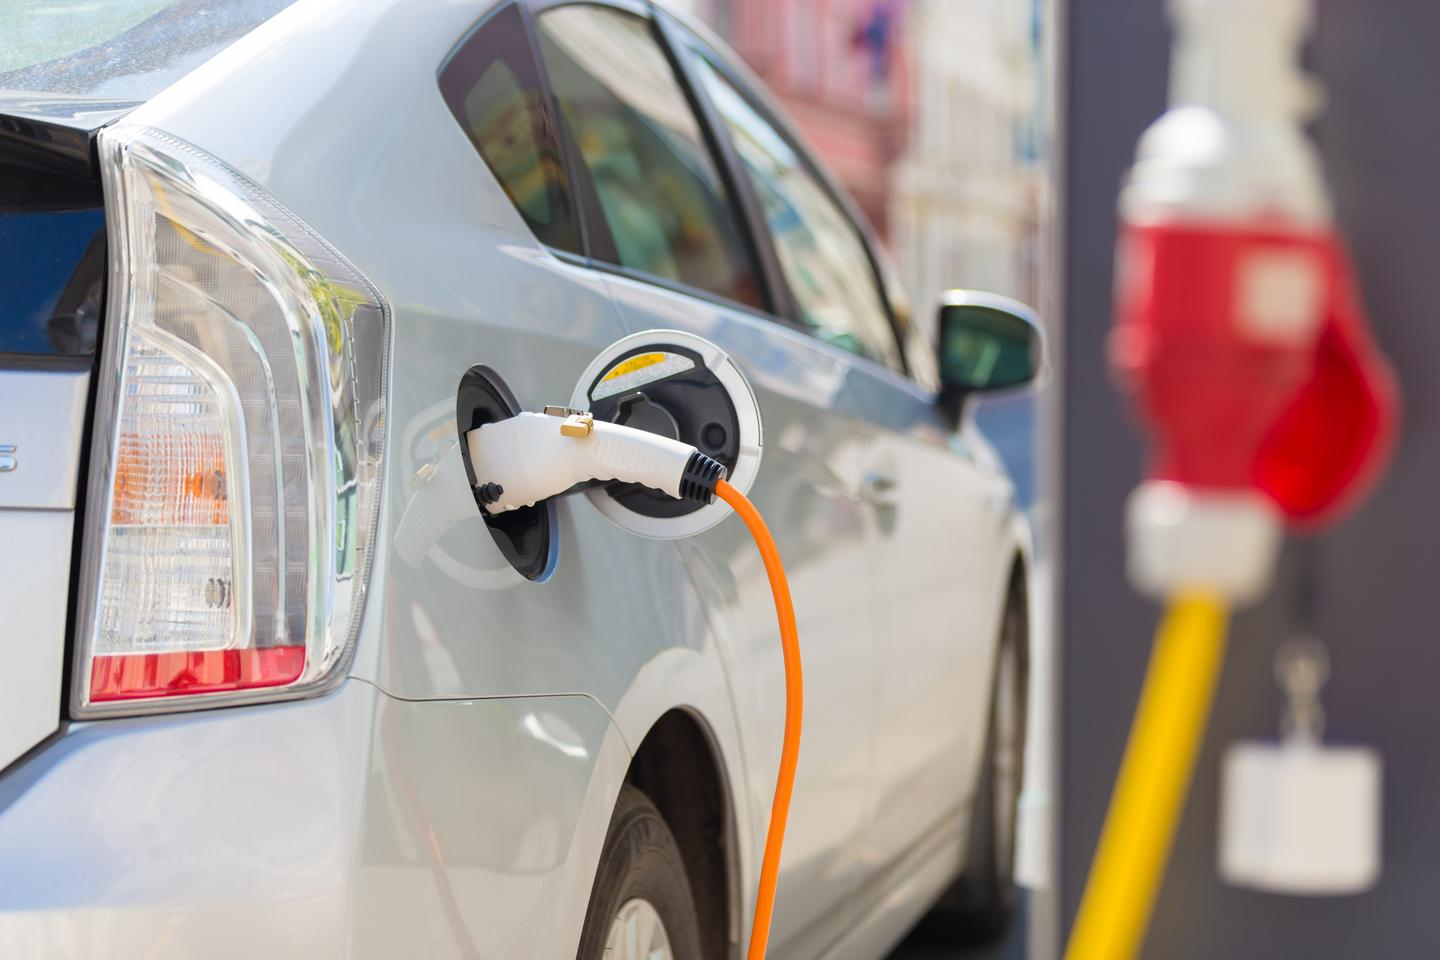 Lithium-sulfur batteries hold great potential when it comes to powering electric vehicles, and scientists in Japan have come up with a solution to one of their key problems